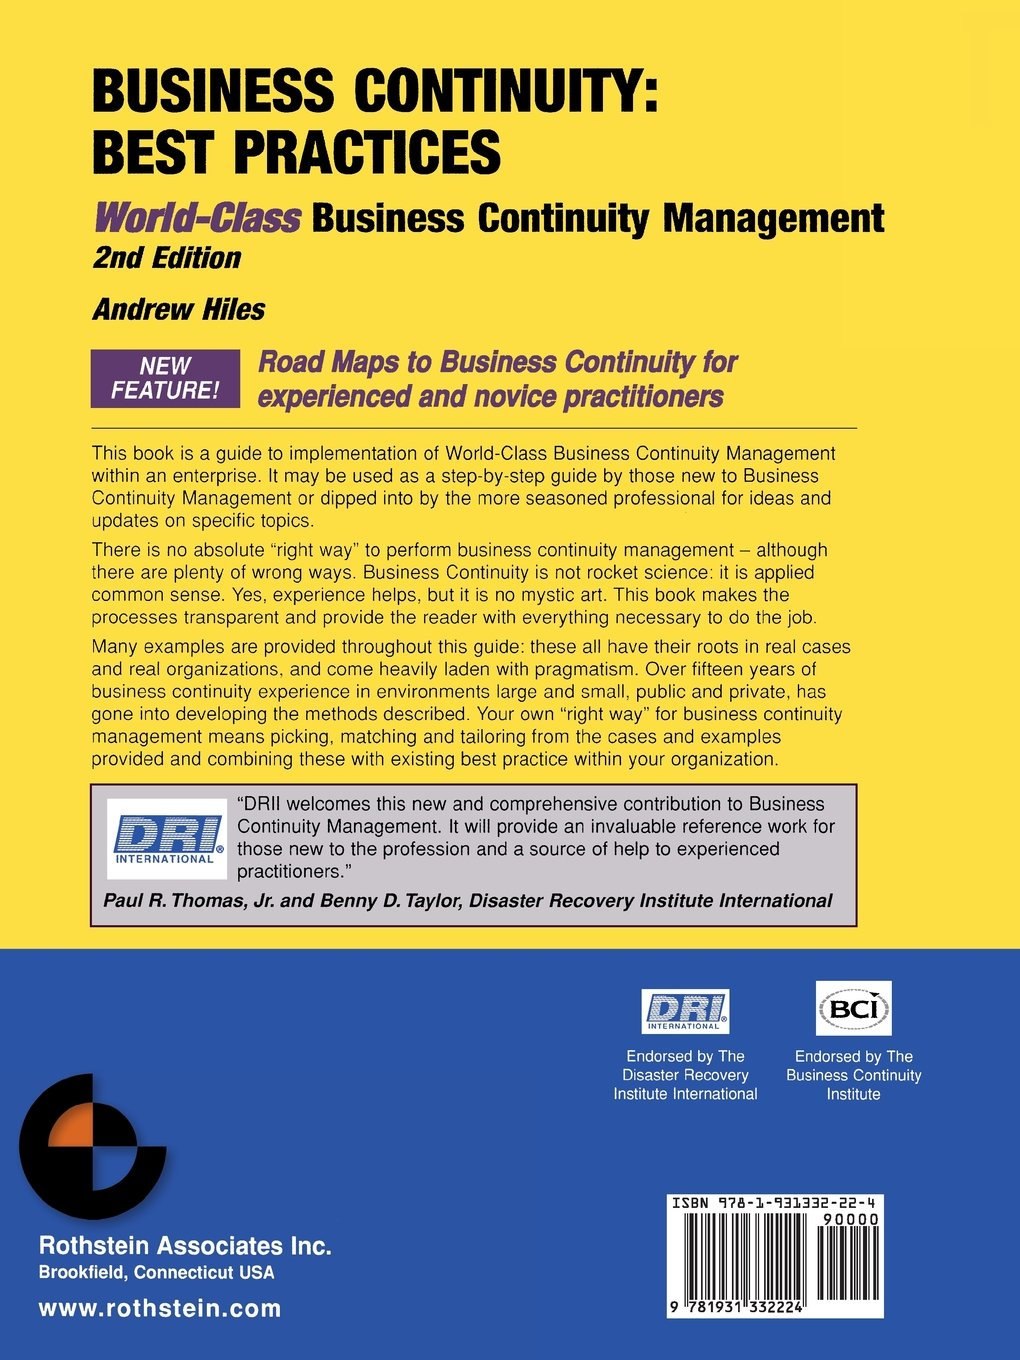 Business Continuity: Best Practices--World-Class Business Continuity Management, Second Edition